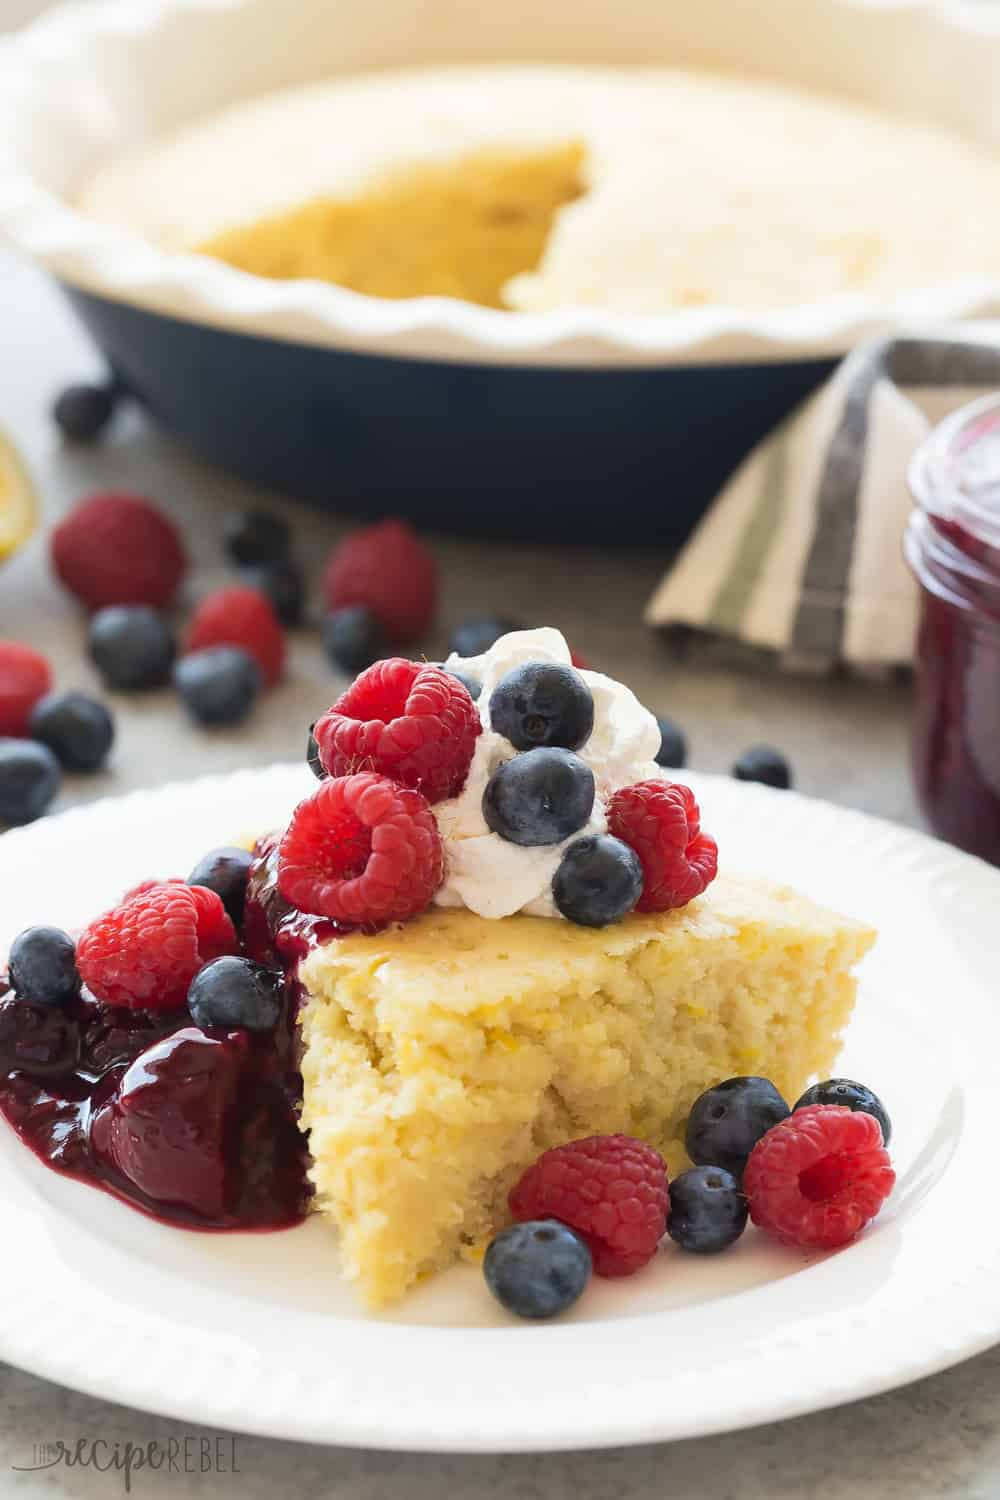 This Lemon Baked Pancake with Berry Sauce is such an easy breakfast for serving a crowd! Perfect for all your holiday brunches.